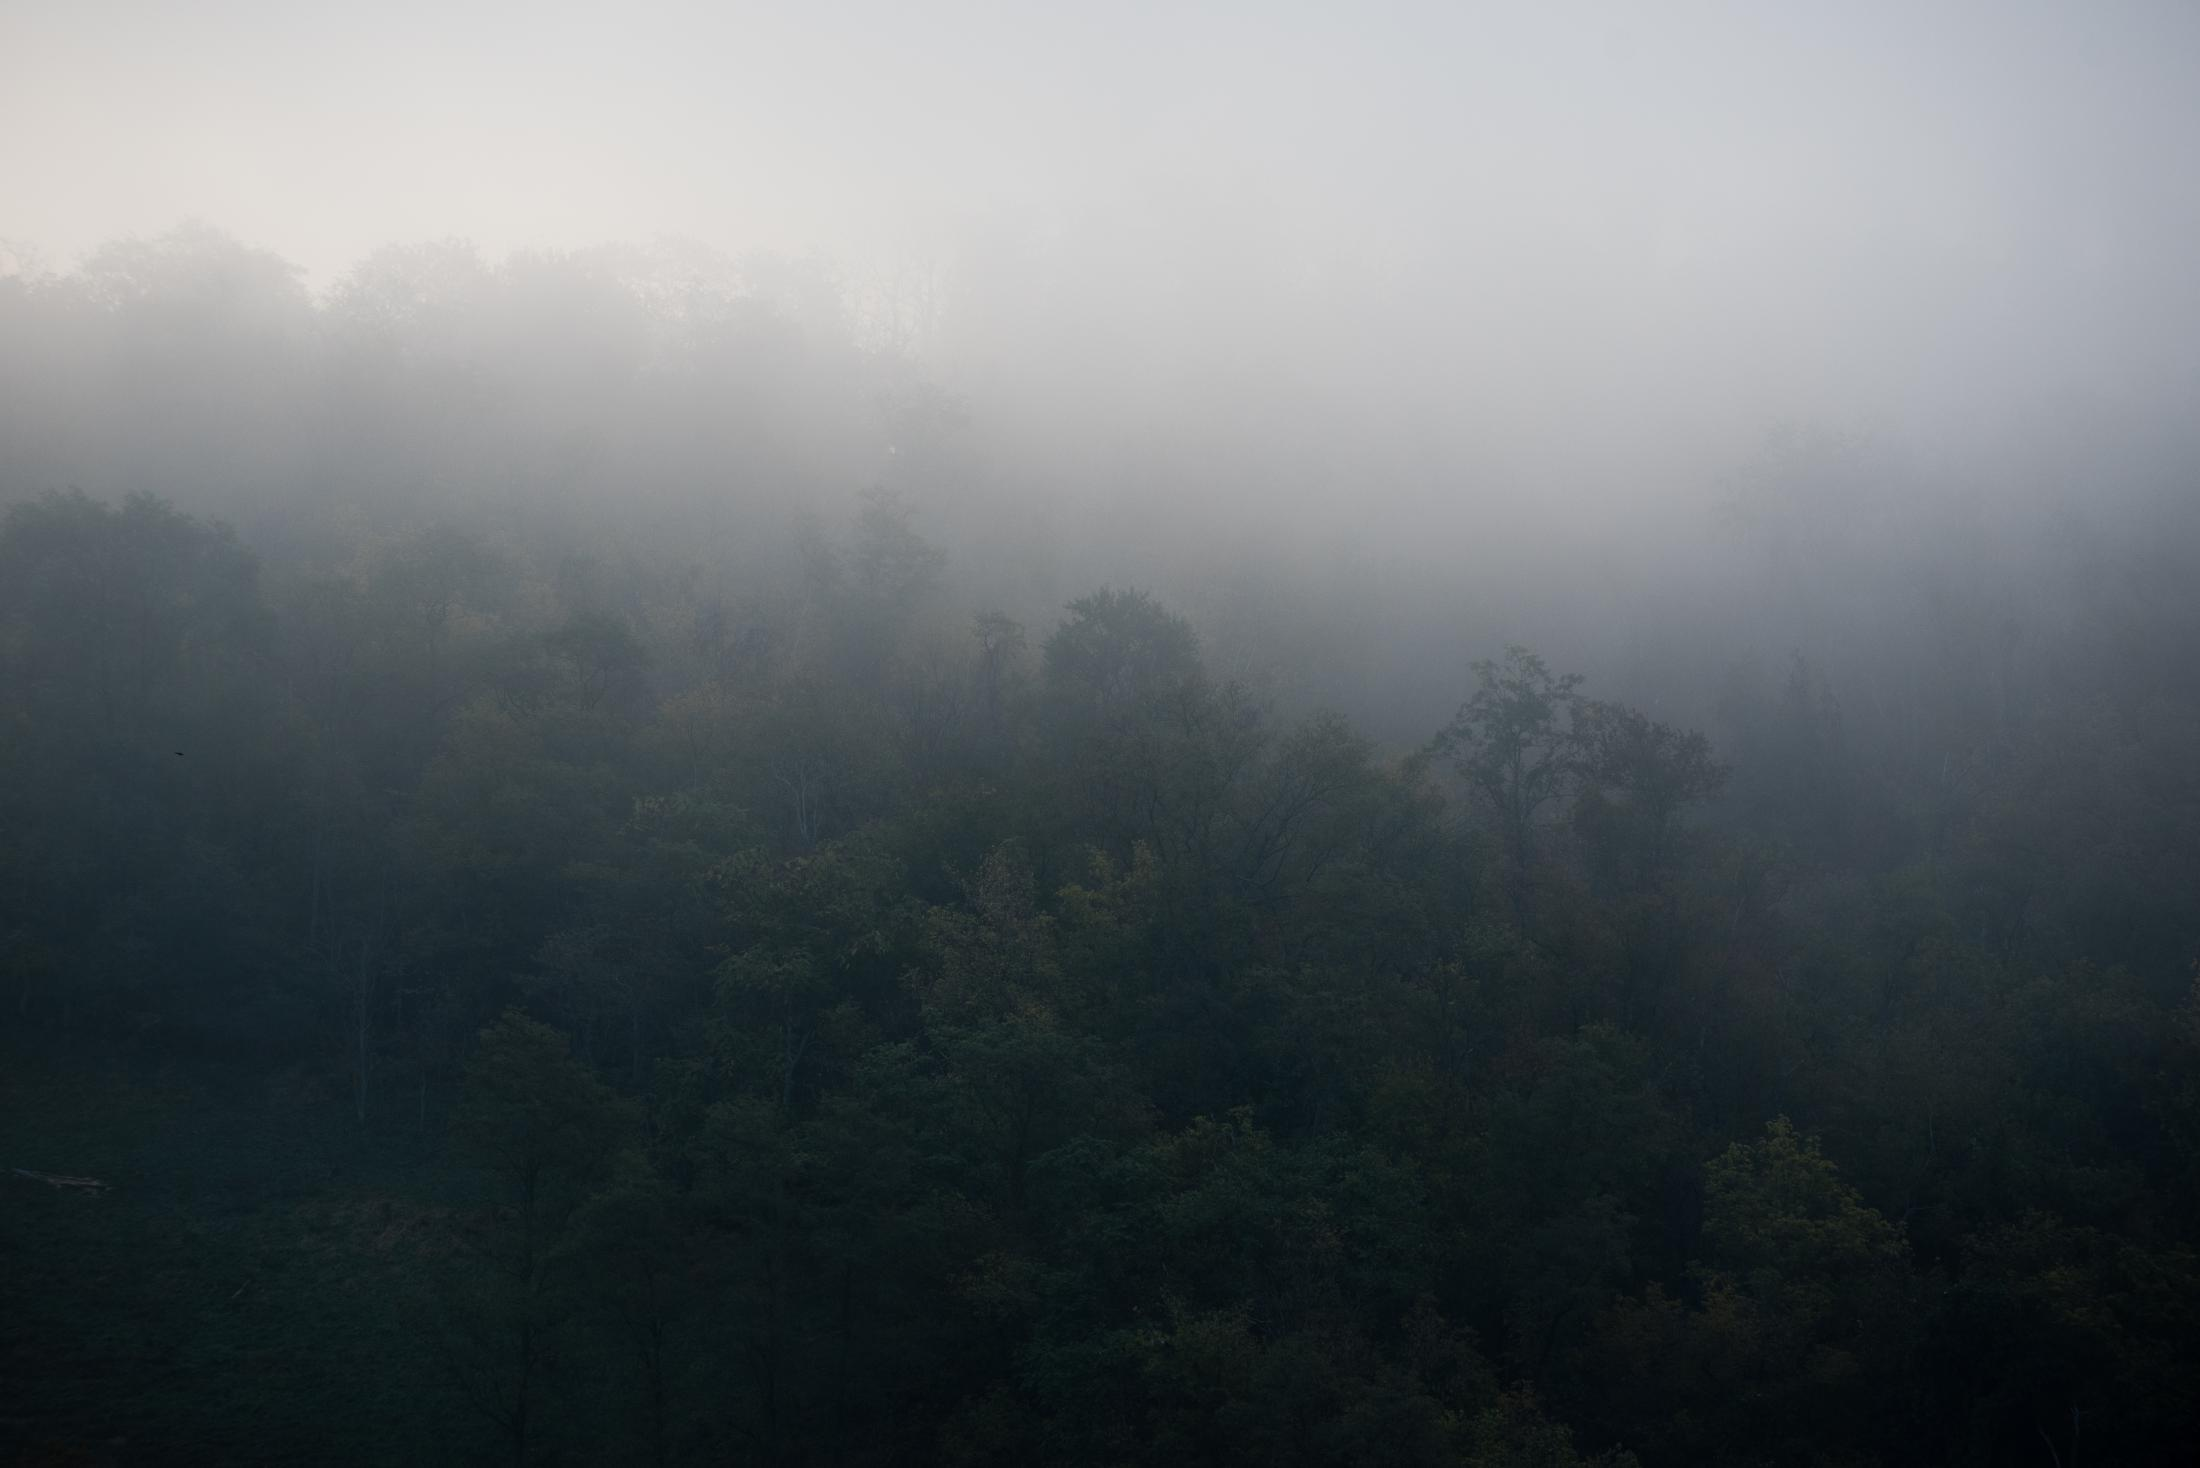 The fog-wreathed hills of the unglaciated Allegheny Plateau surround the city of Wheeling, West Virginia. The state's terrain once proved to be a formidable obstacle but ingenuity and grit eventually brought the National Road and B&O Railroad across the hills in 1818 and 1853, respectively. This, combined with the construction of the first bridge to cross the Ohio River, made Wheeling a transportation hub for westward expansion.